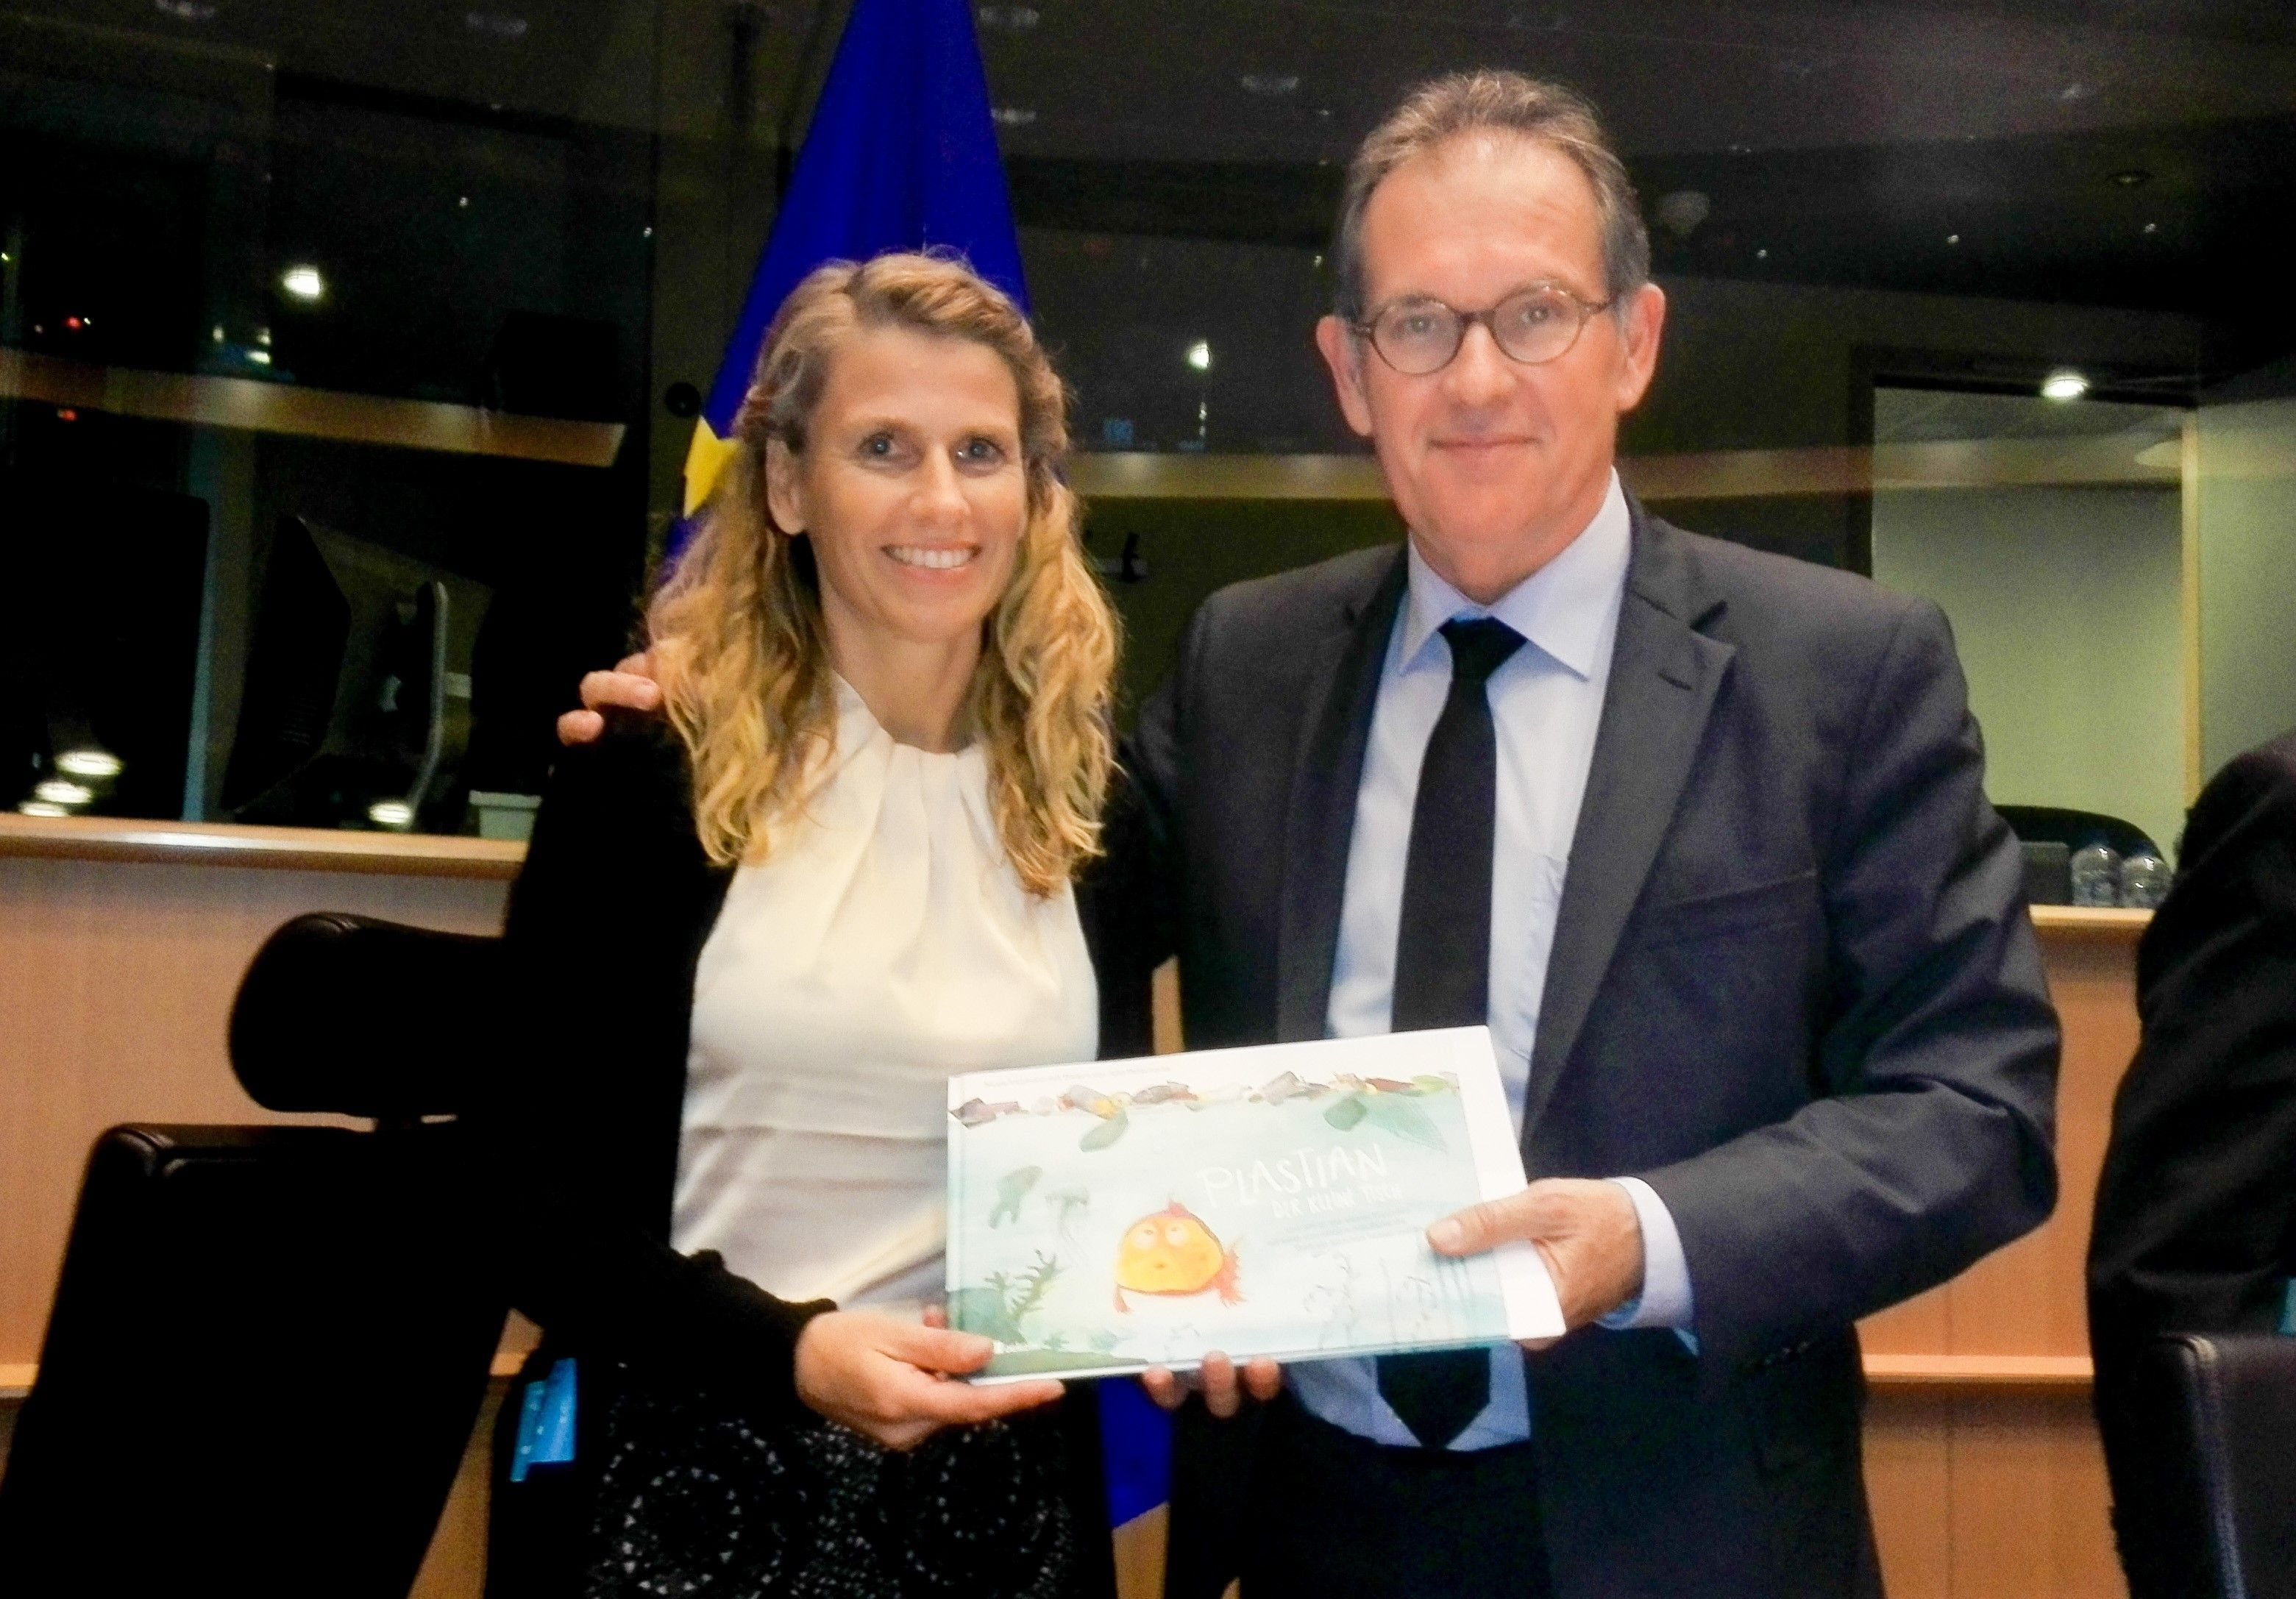 Plastian Book is now finally available in PRINT copy as well as Kindle Version! Get it on our website at .  In the picture the author, an Austrian teacher, and Alain Cadec, Member of the European Parliament, when it was presented there.